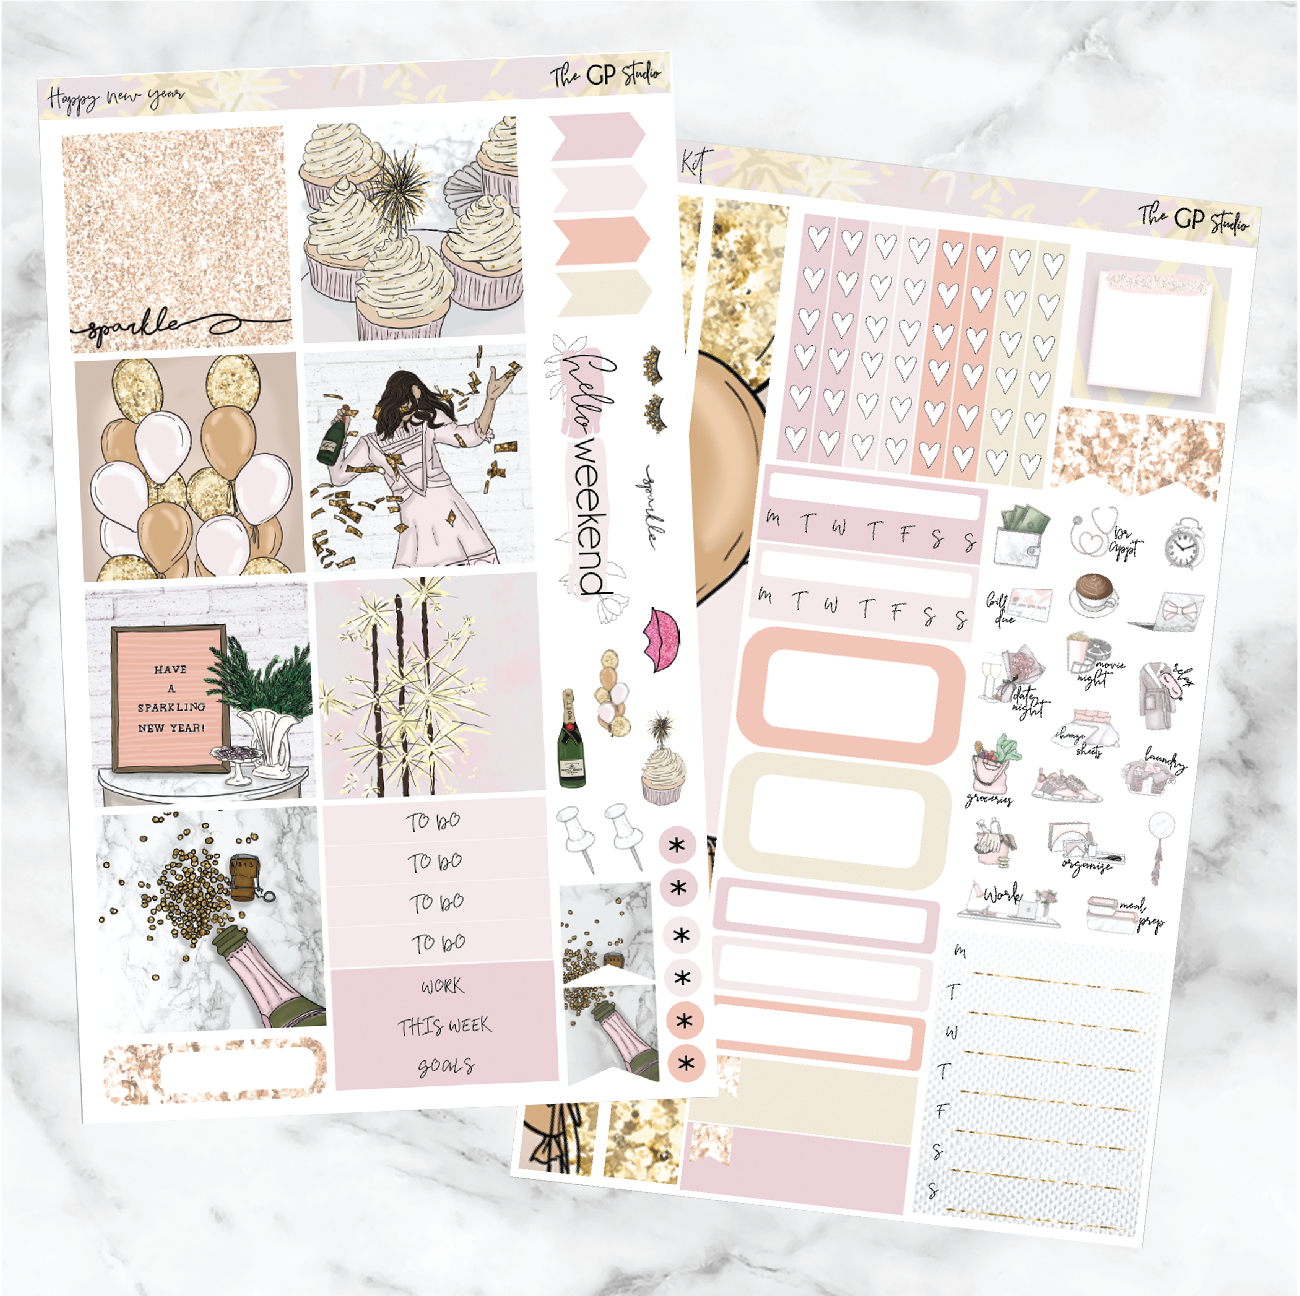 HAPPY NEW YEAR Mini Size Planner Sticker Kit-The GP Studio